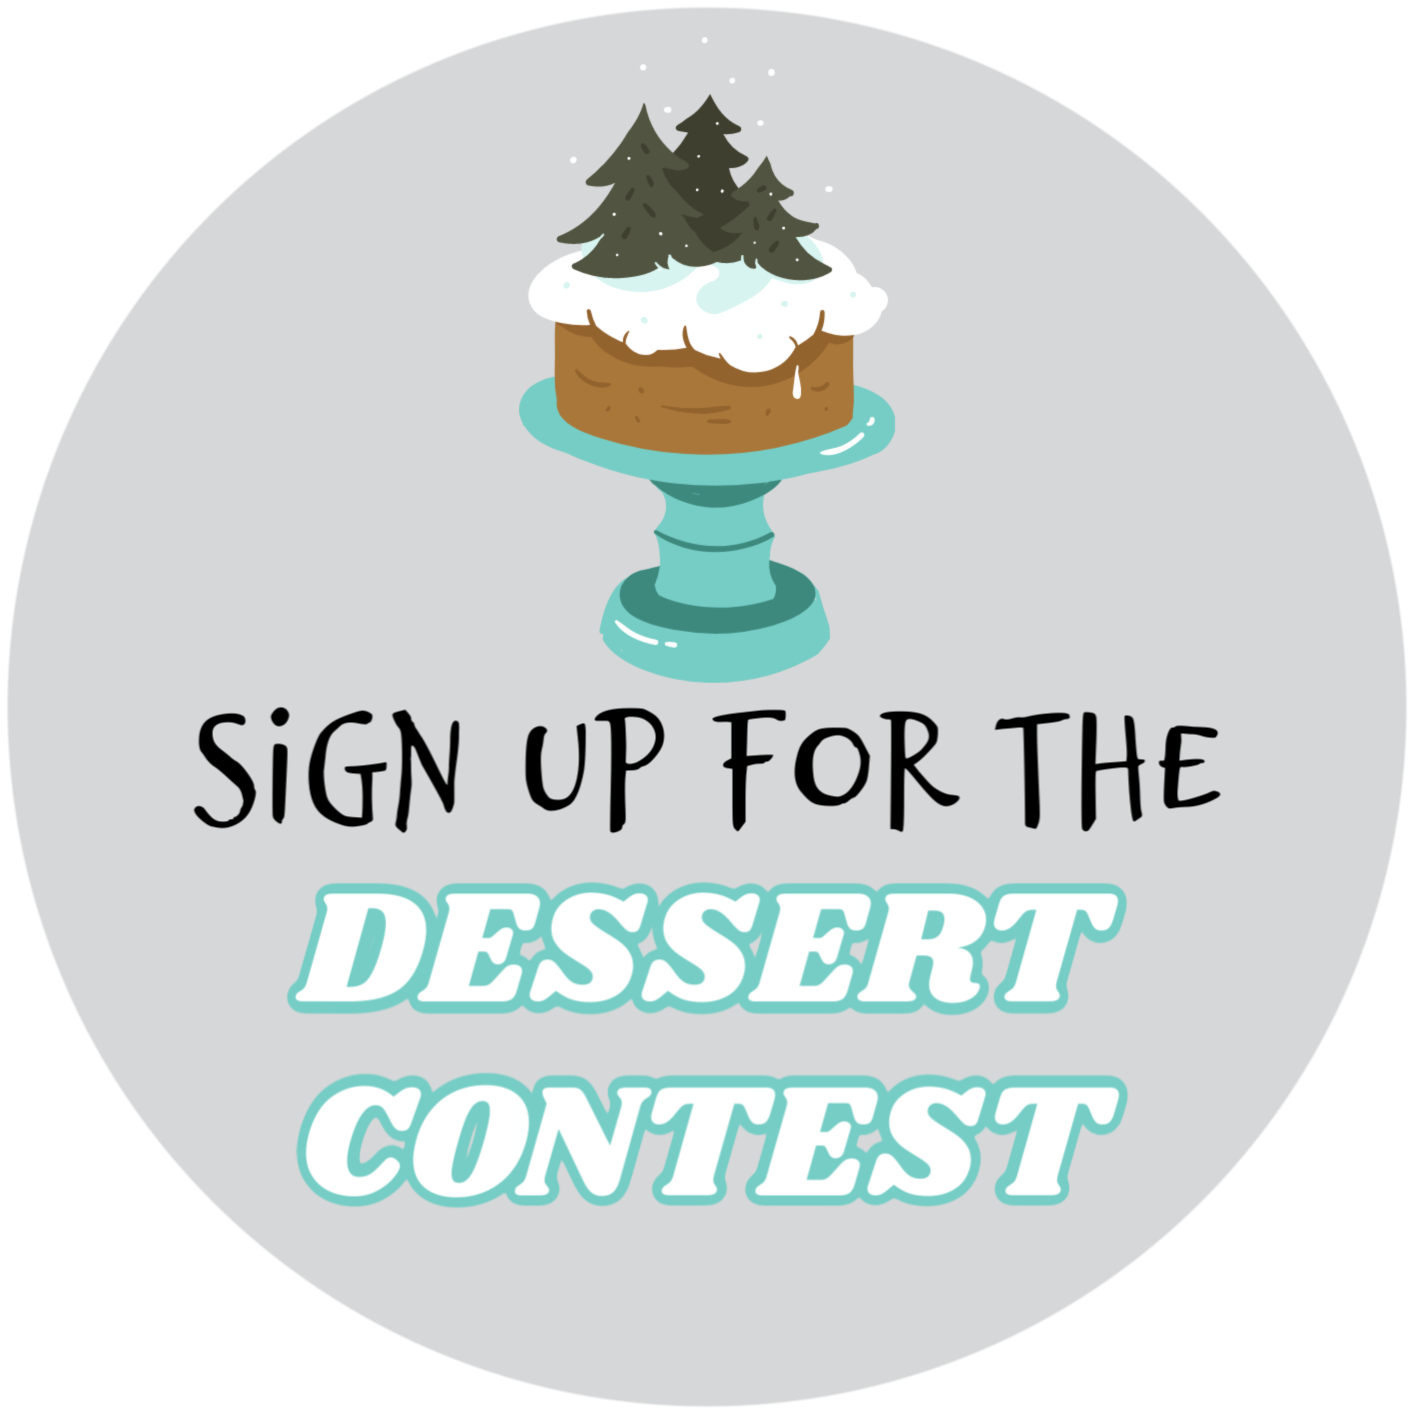 sign up for dessert contest.png